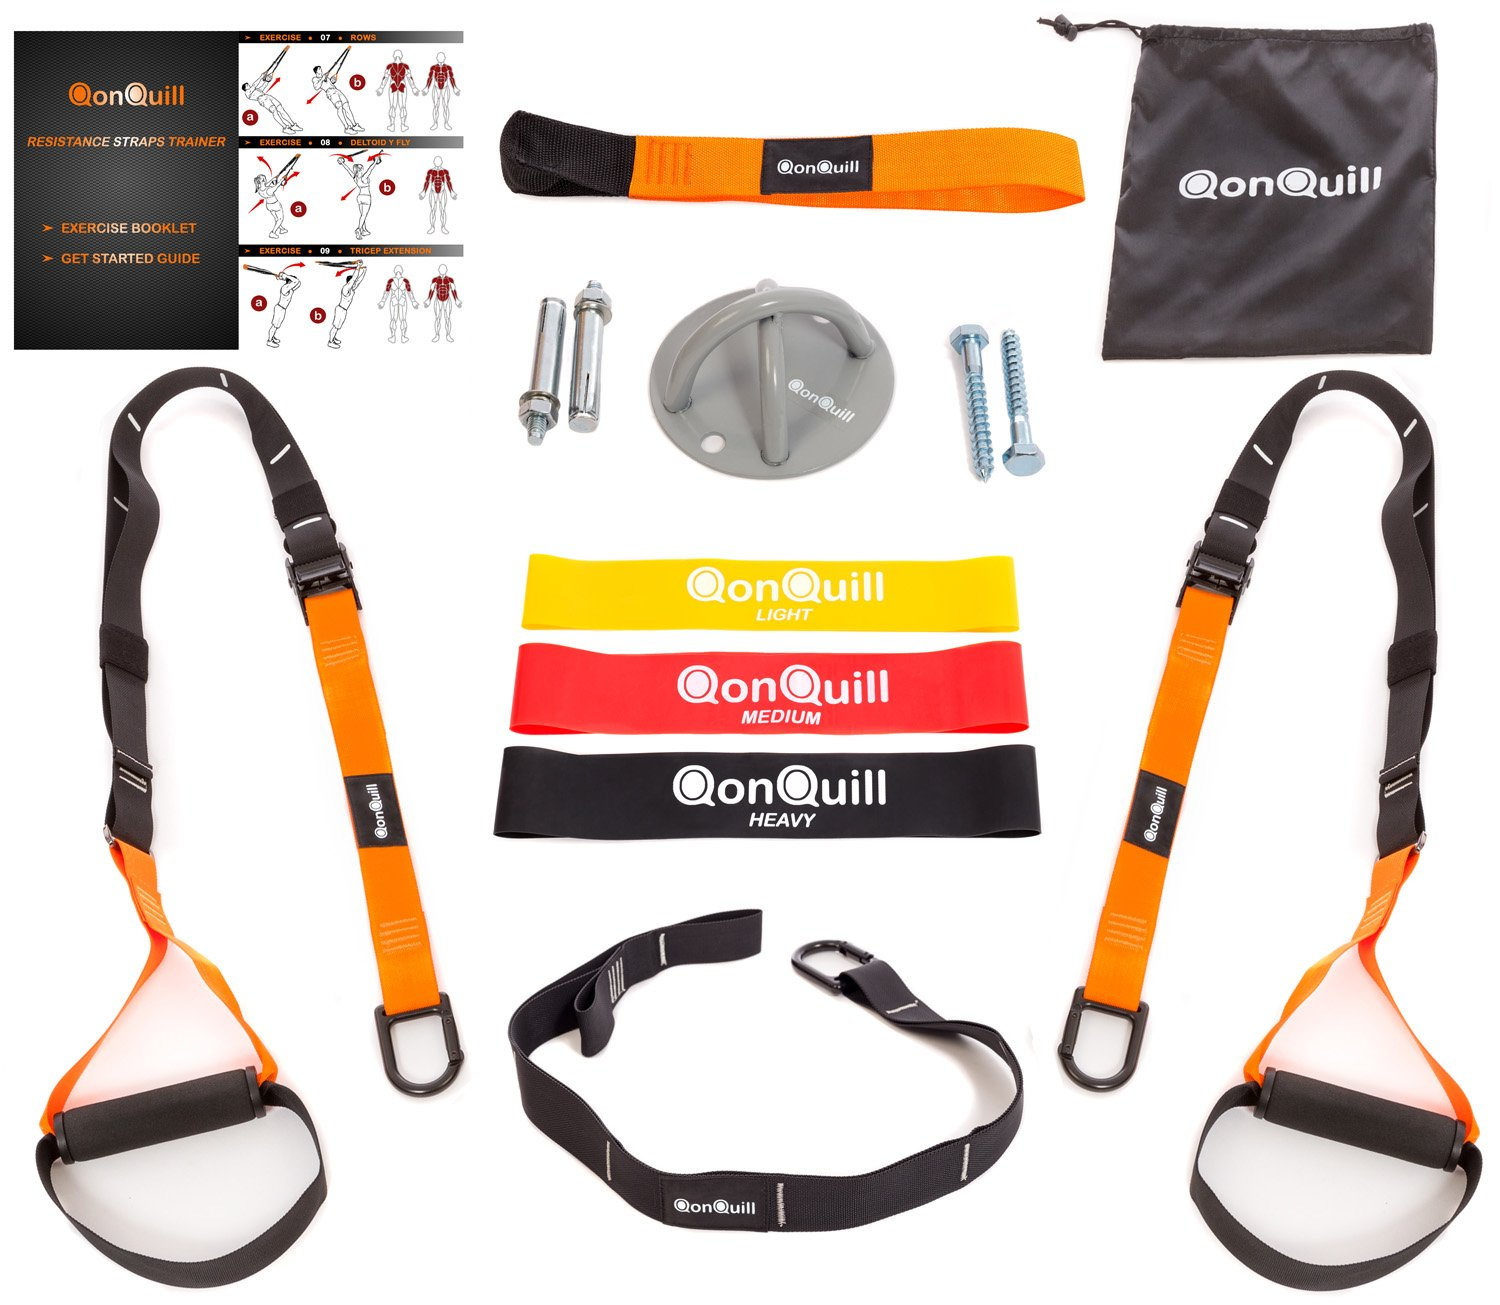 Resistance Straps Trainer Bundle | Complete BodyWeight Training Straps Kit + Wall Mount Bracket + 3 Exercise Loop Bands | Five Anchoring Solutions with Easy Setup for Home, Gym & Outdoors Workouts by QonQuill - Sport & Fitness Equipment